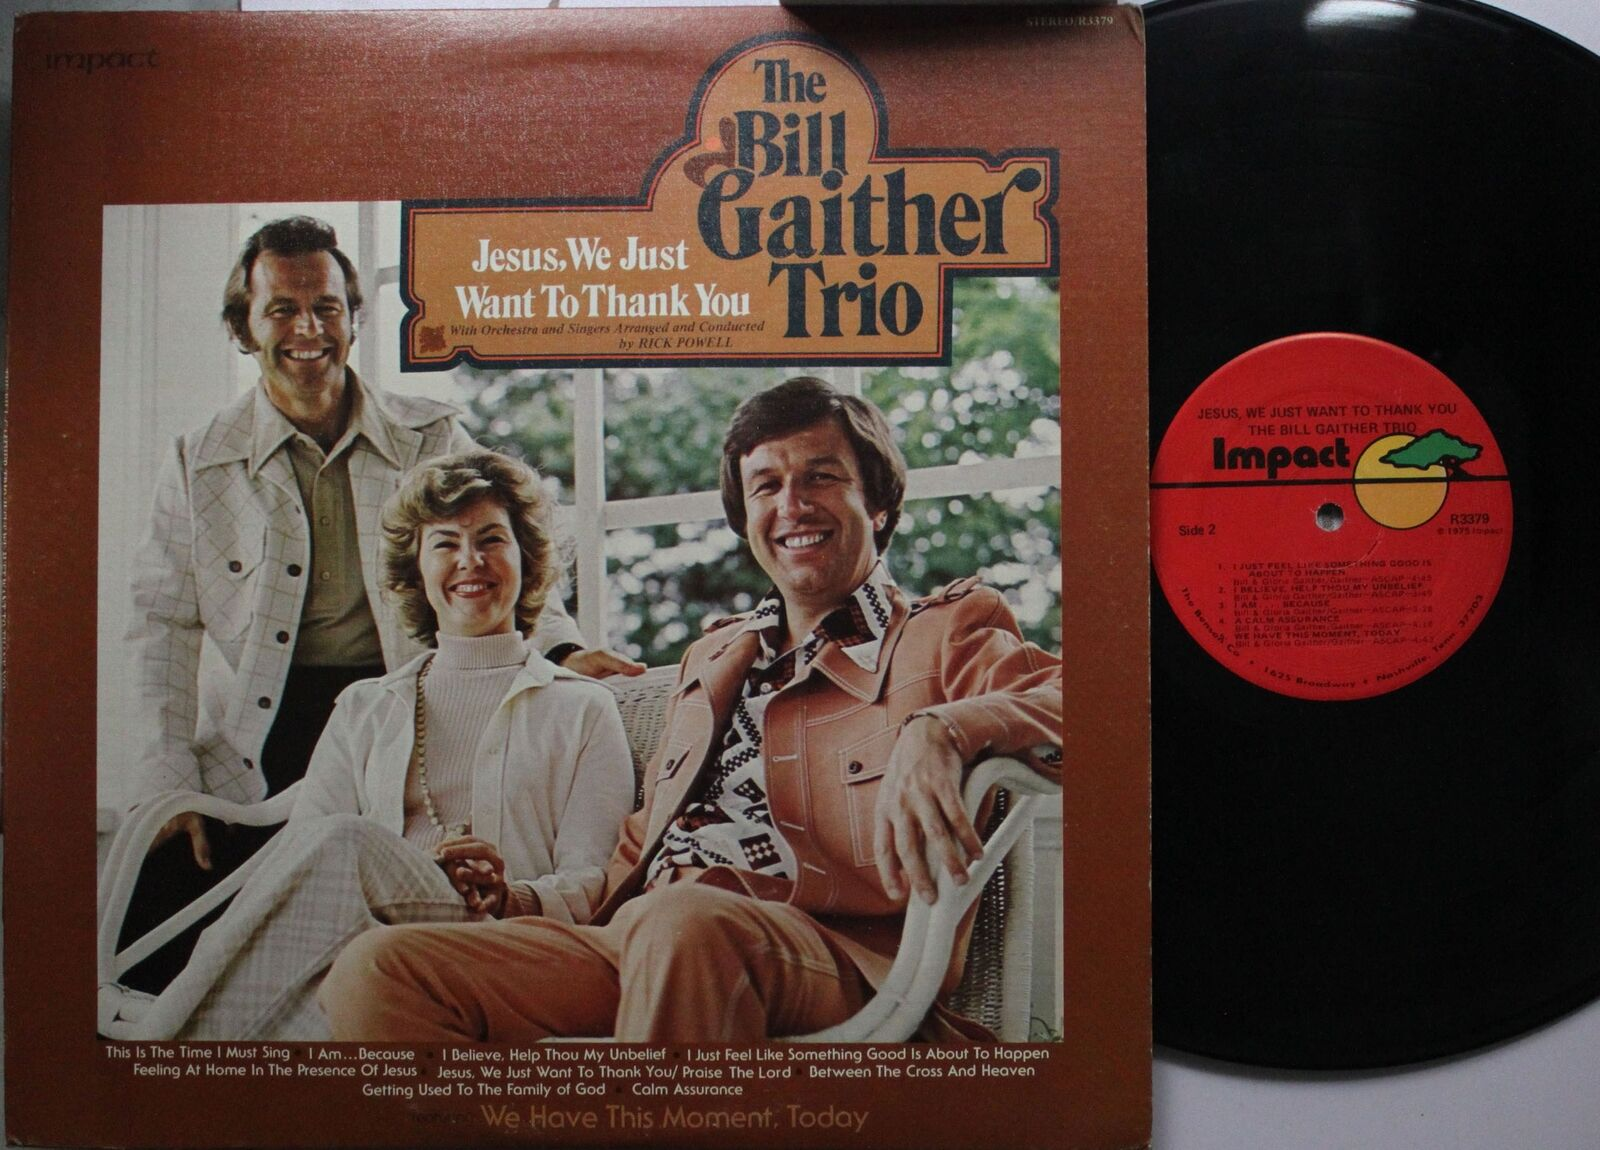 Country Lp The Bill Gaither Trio Jesus We Just Want To Thank You On